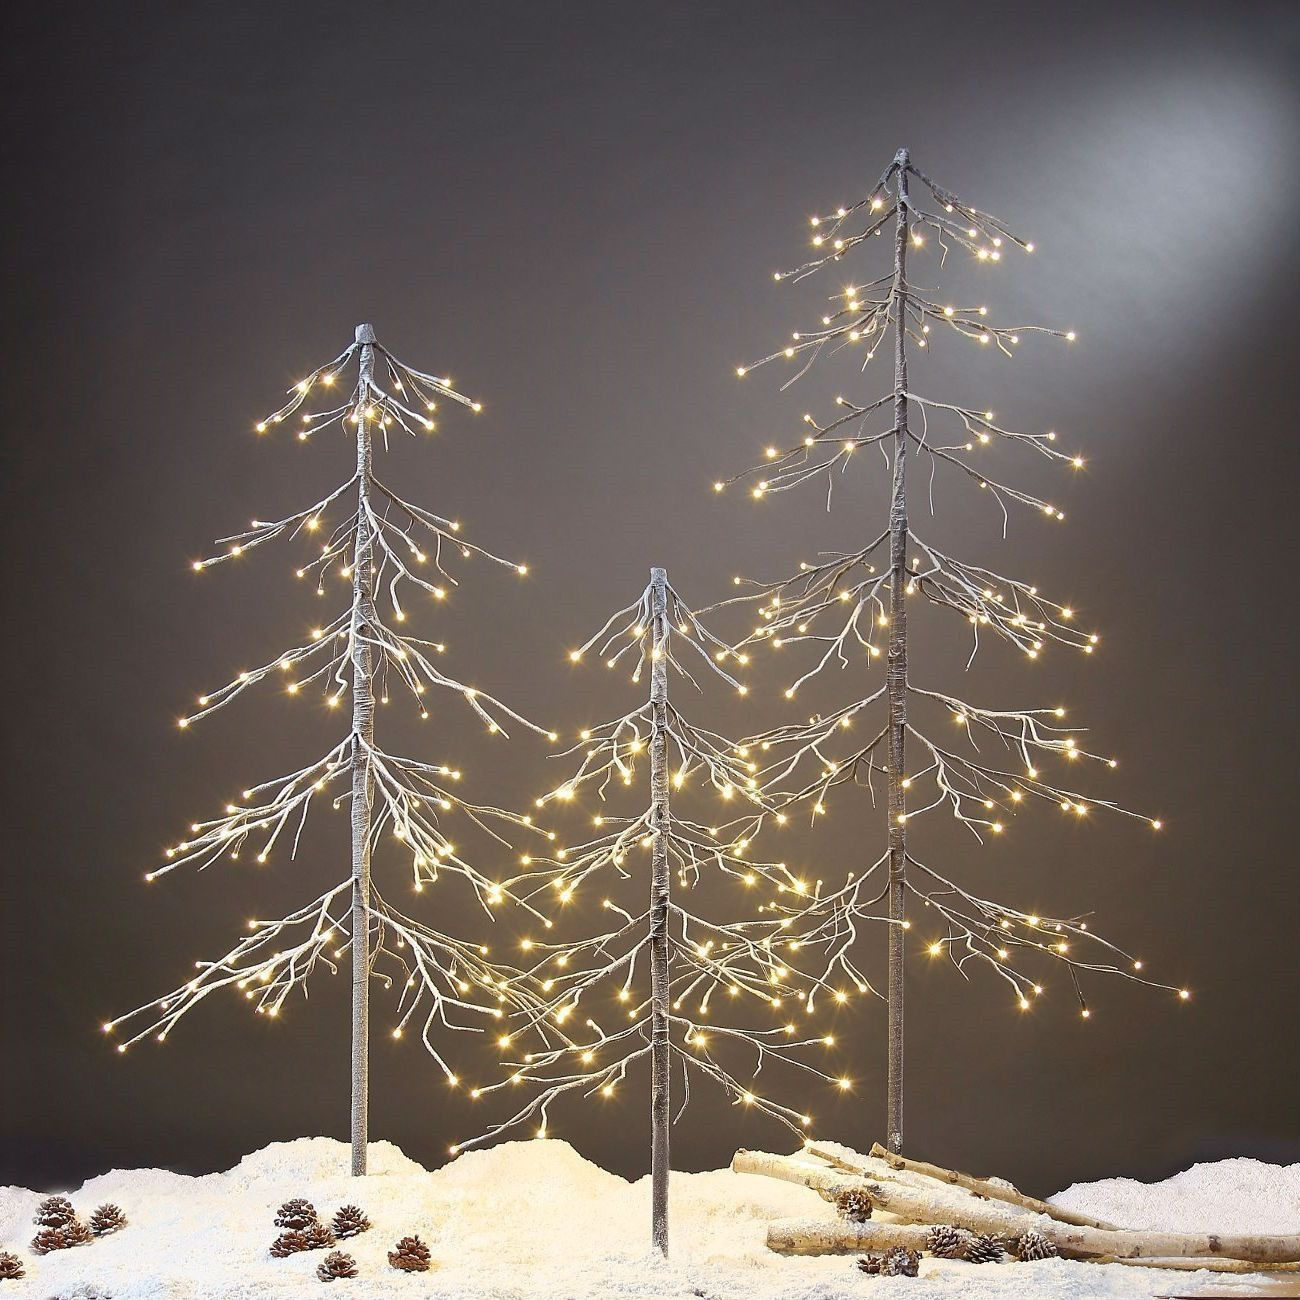 3-Ft Pre-Lit Snow Fir Christmas Tree Indoor Outdoor with LED Tree-Top Star